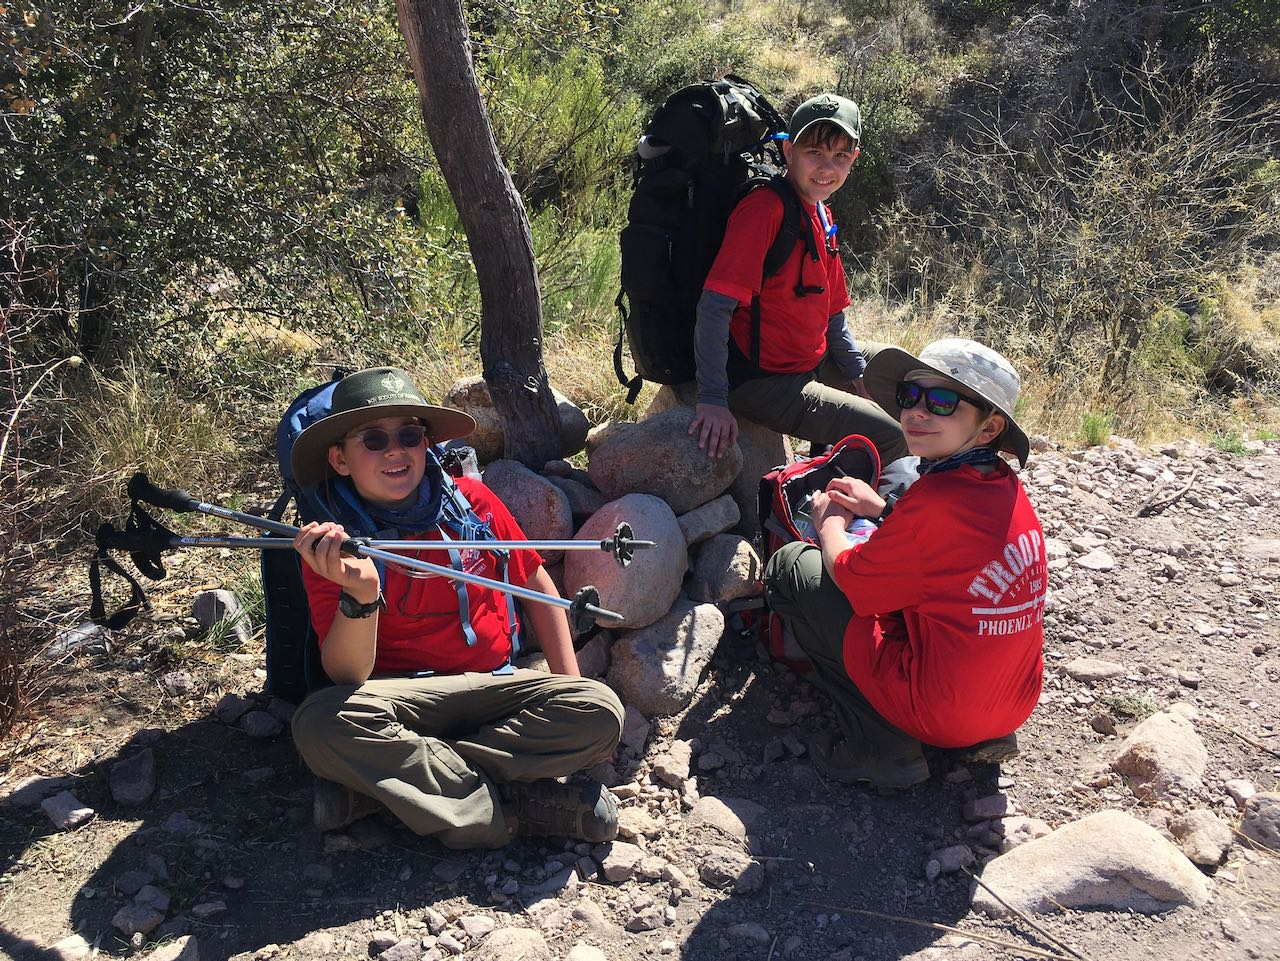 3 scouts sitting on trail